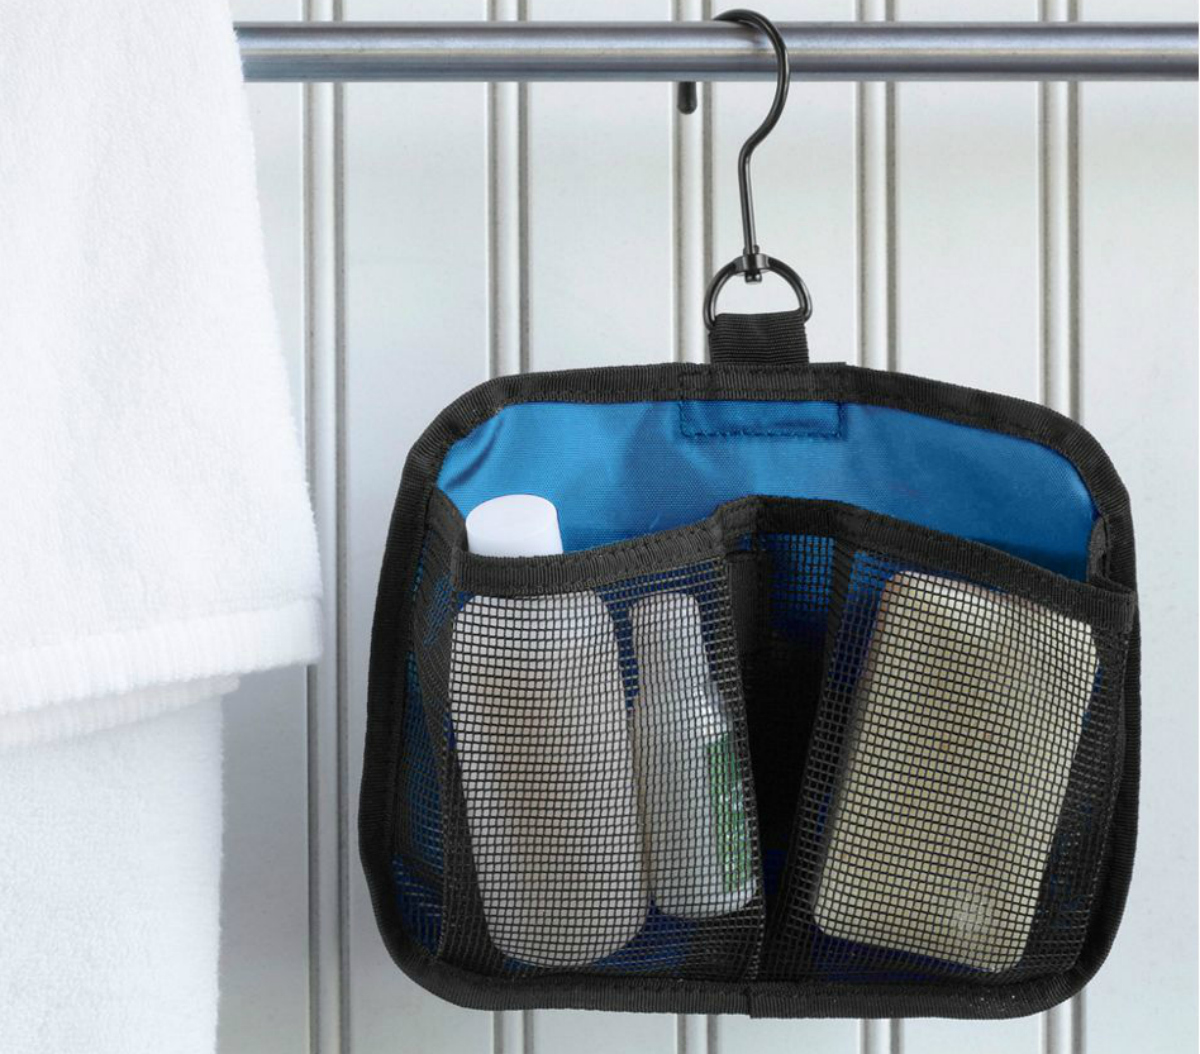 travel organizer hanging from a shower curtain rod